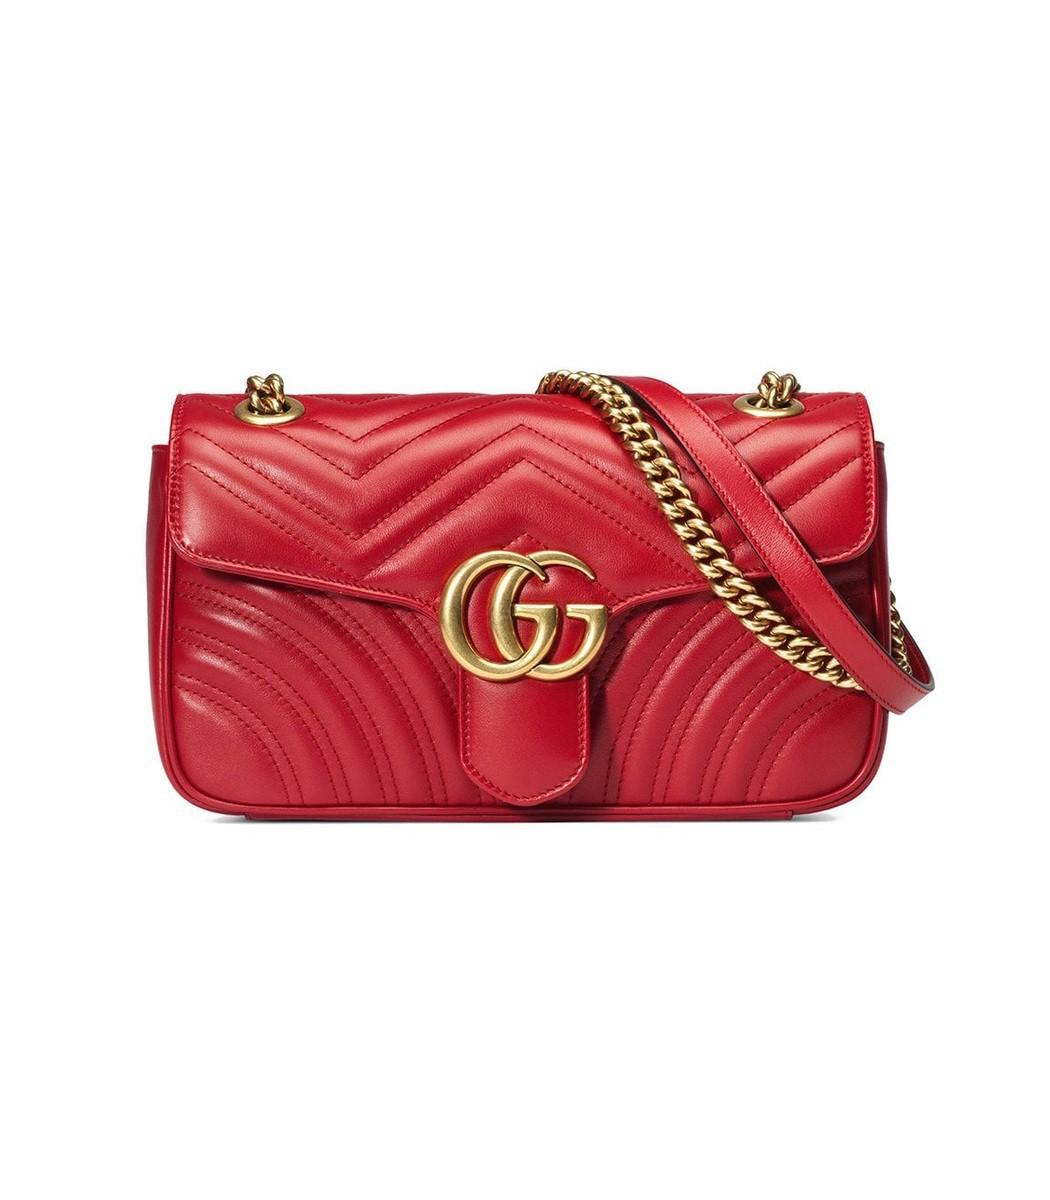 6fbcb1854c47 Lyst - Gucci GG Marmont Small Matelass' Shoulder Bag in Red